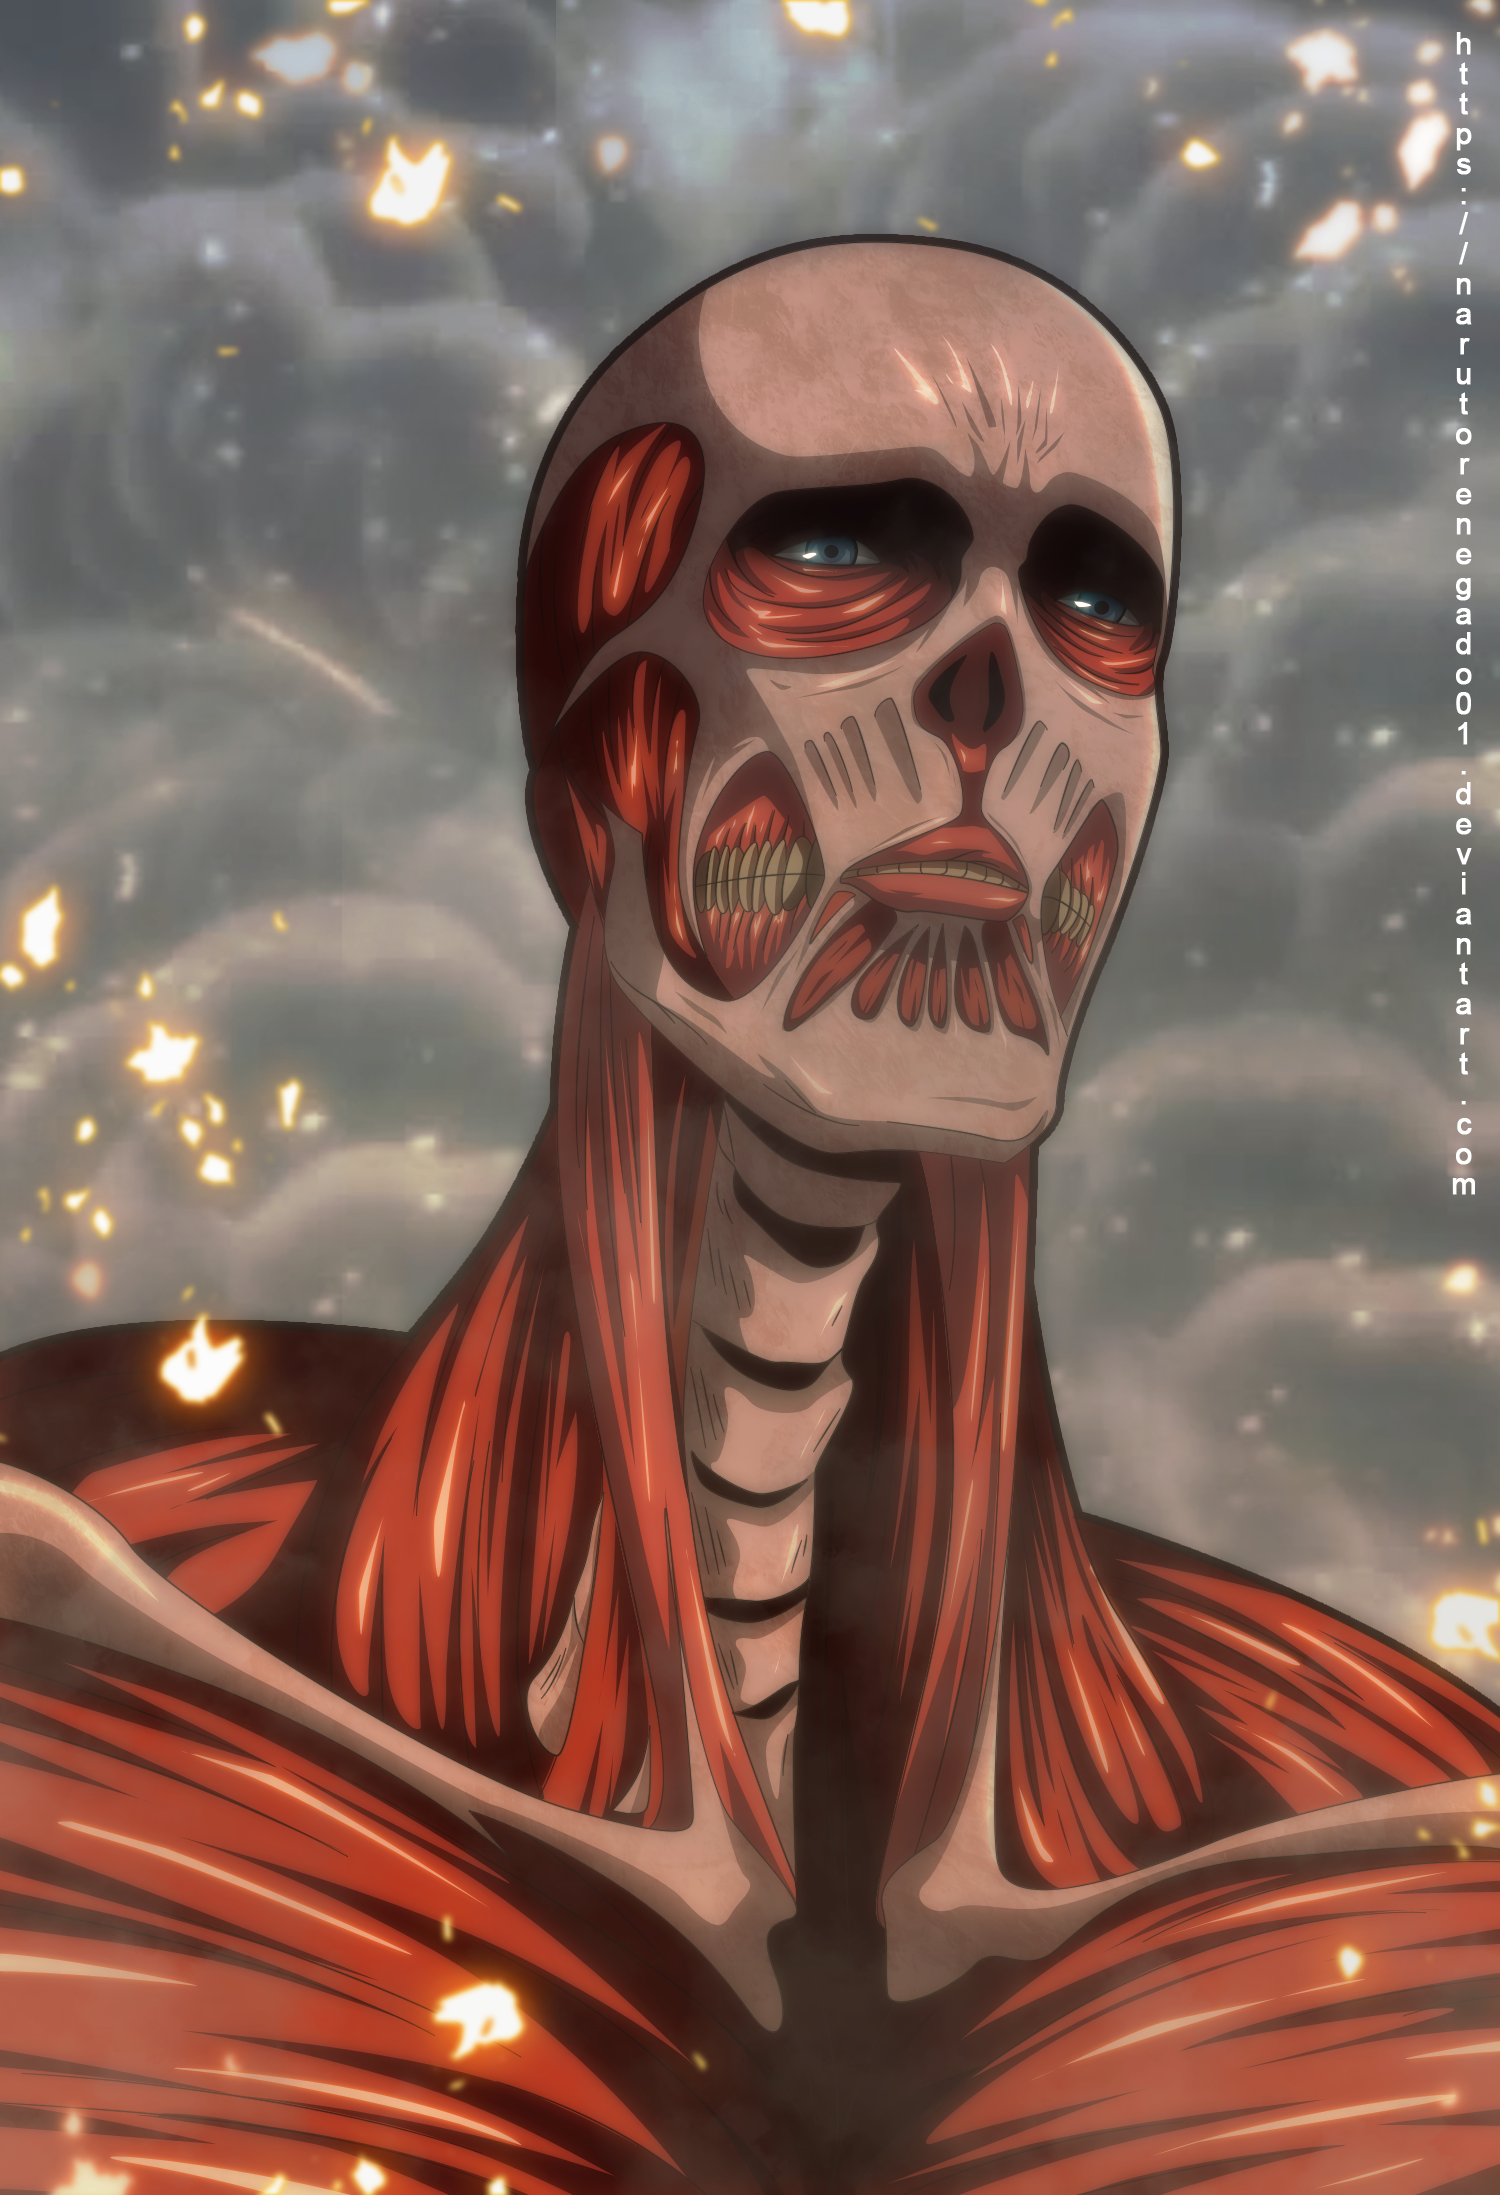 SNK Chapter 104 Attack on titan, Attack on titan anime